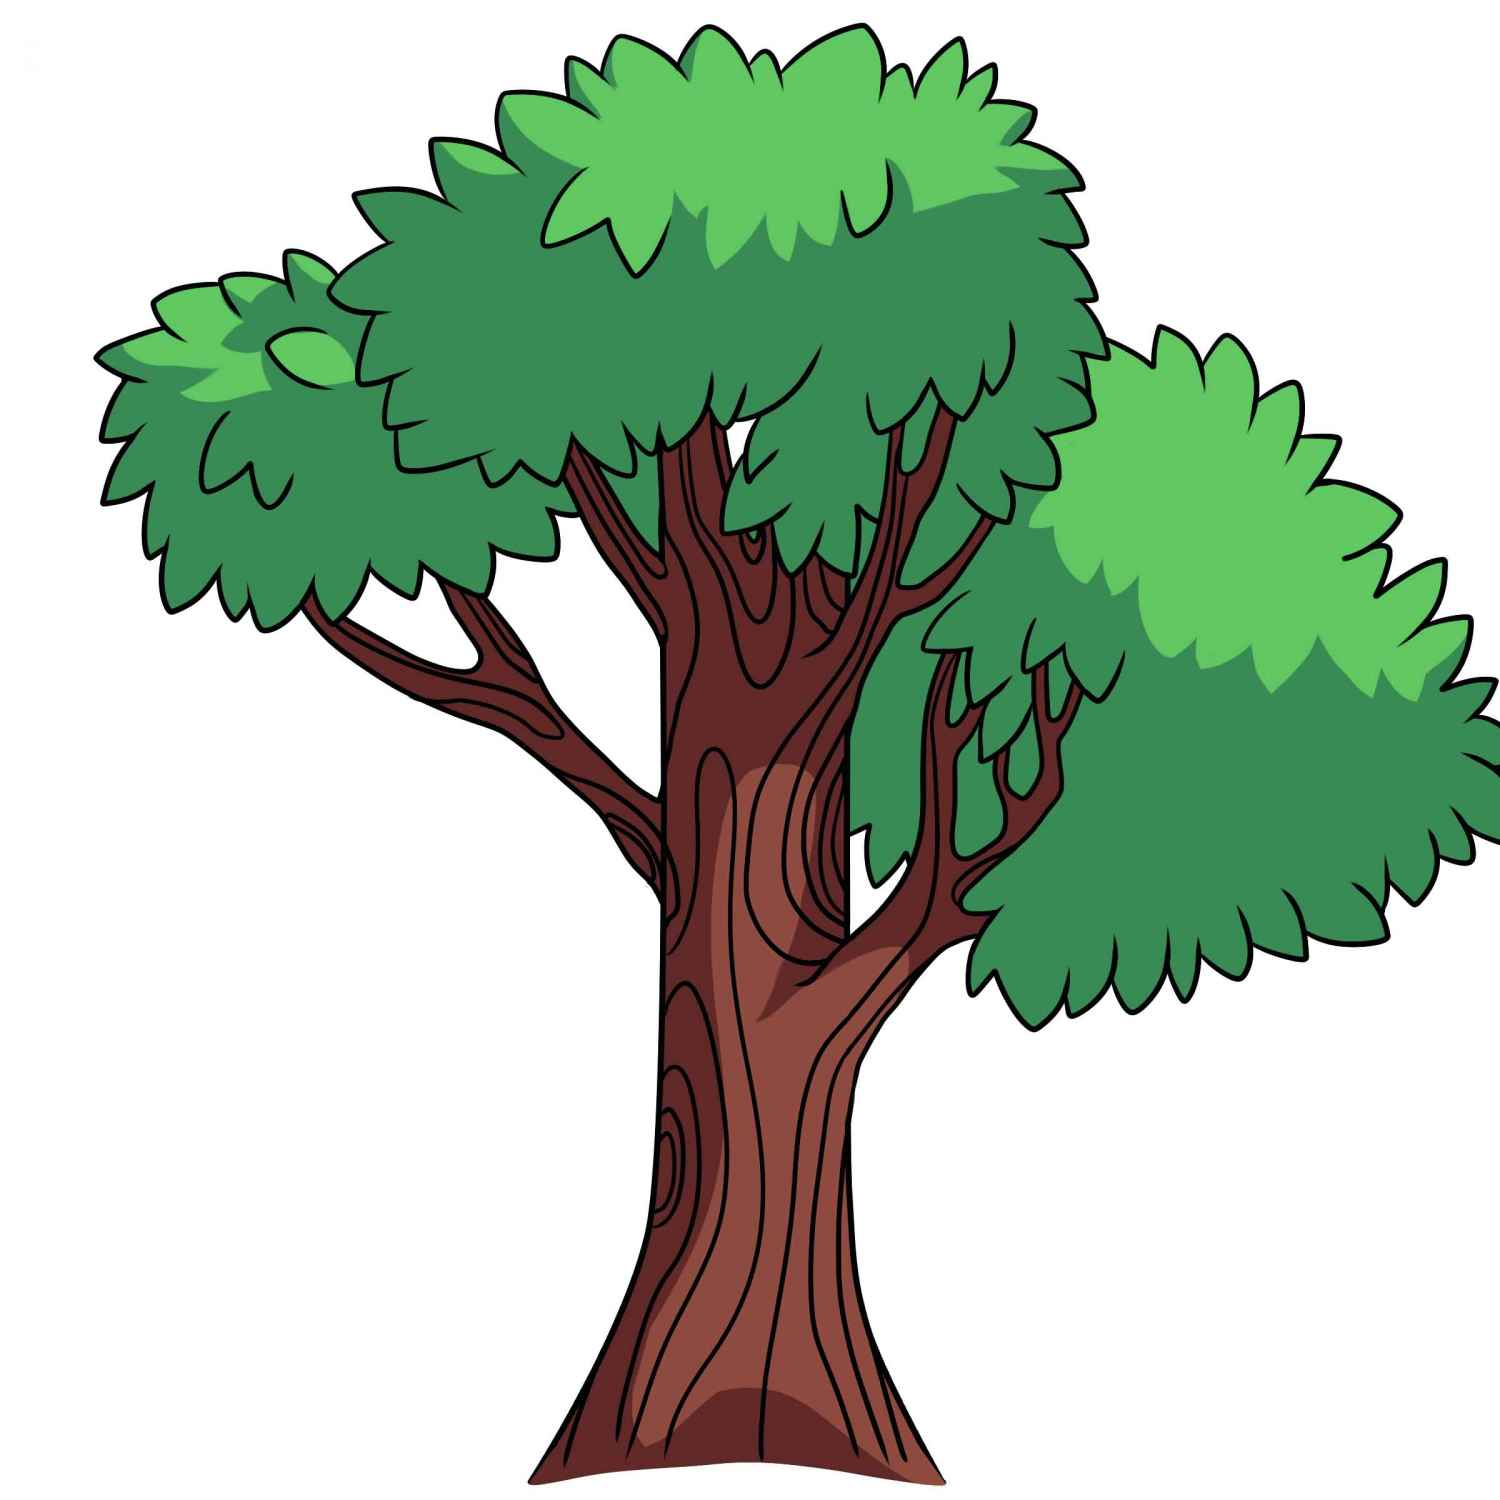 Rainforest clipart forest land. Trees drawing at getdrawings